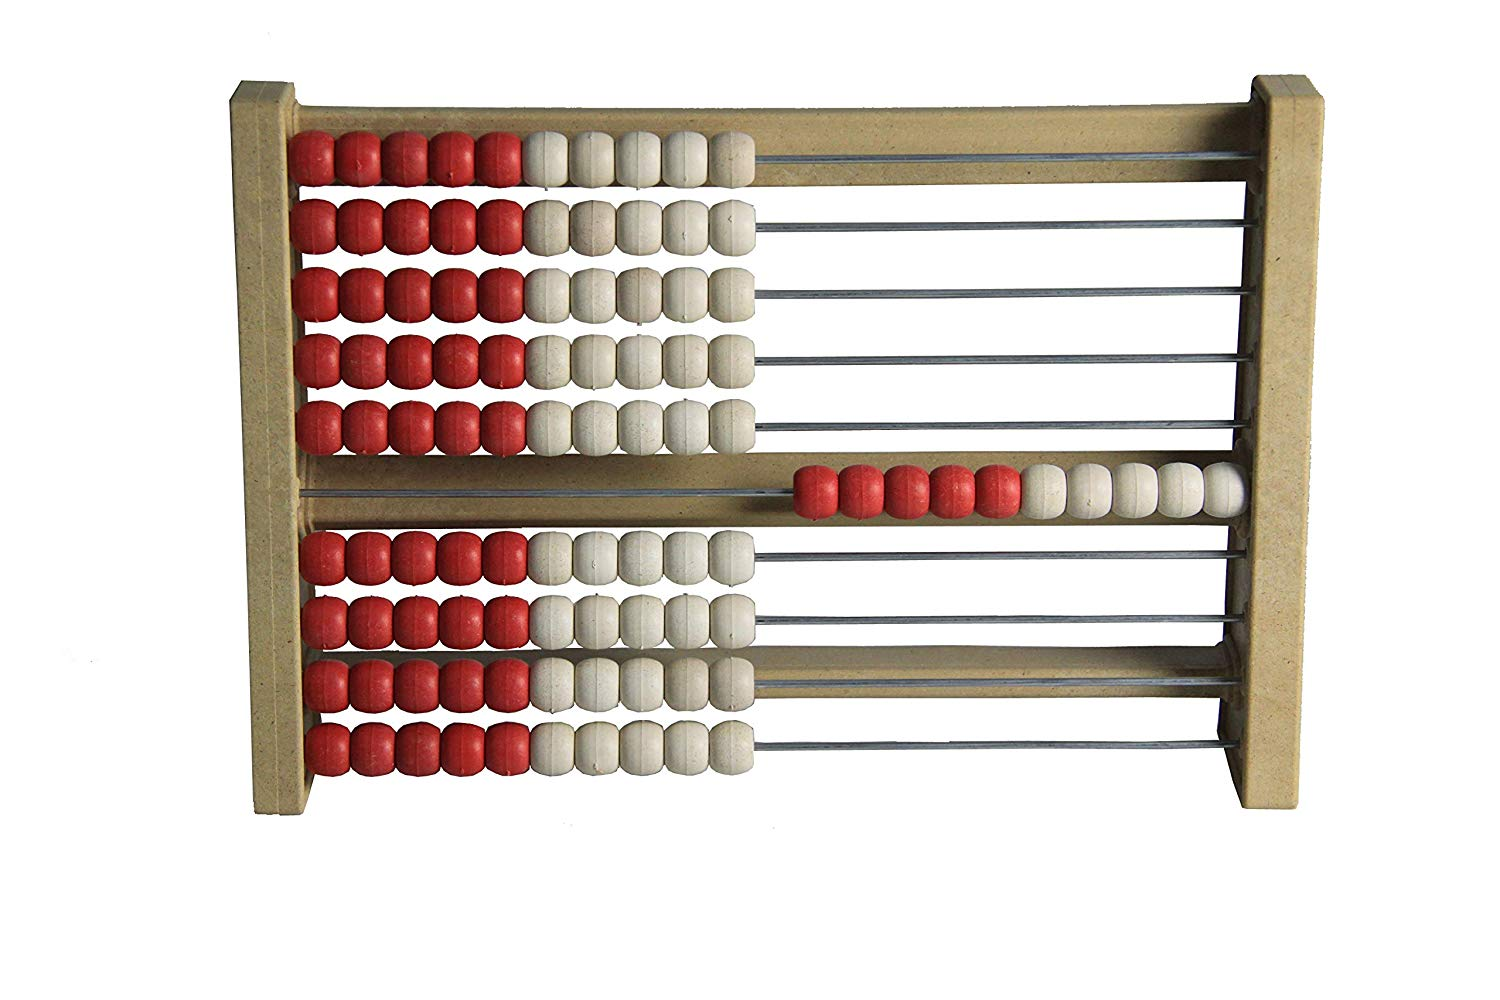 100 student´s abacus counting frame solid (RE-Wood ®) – red/white – made in Germany